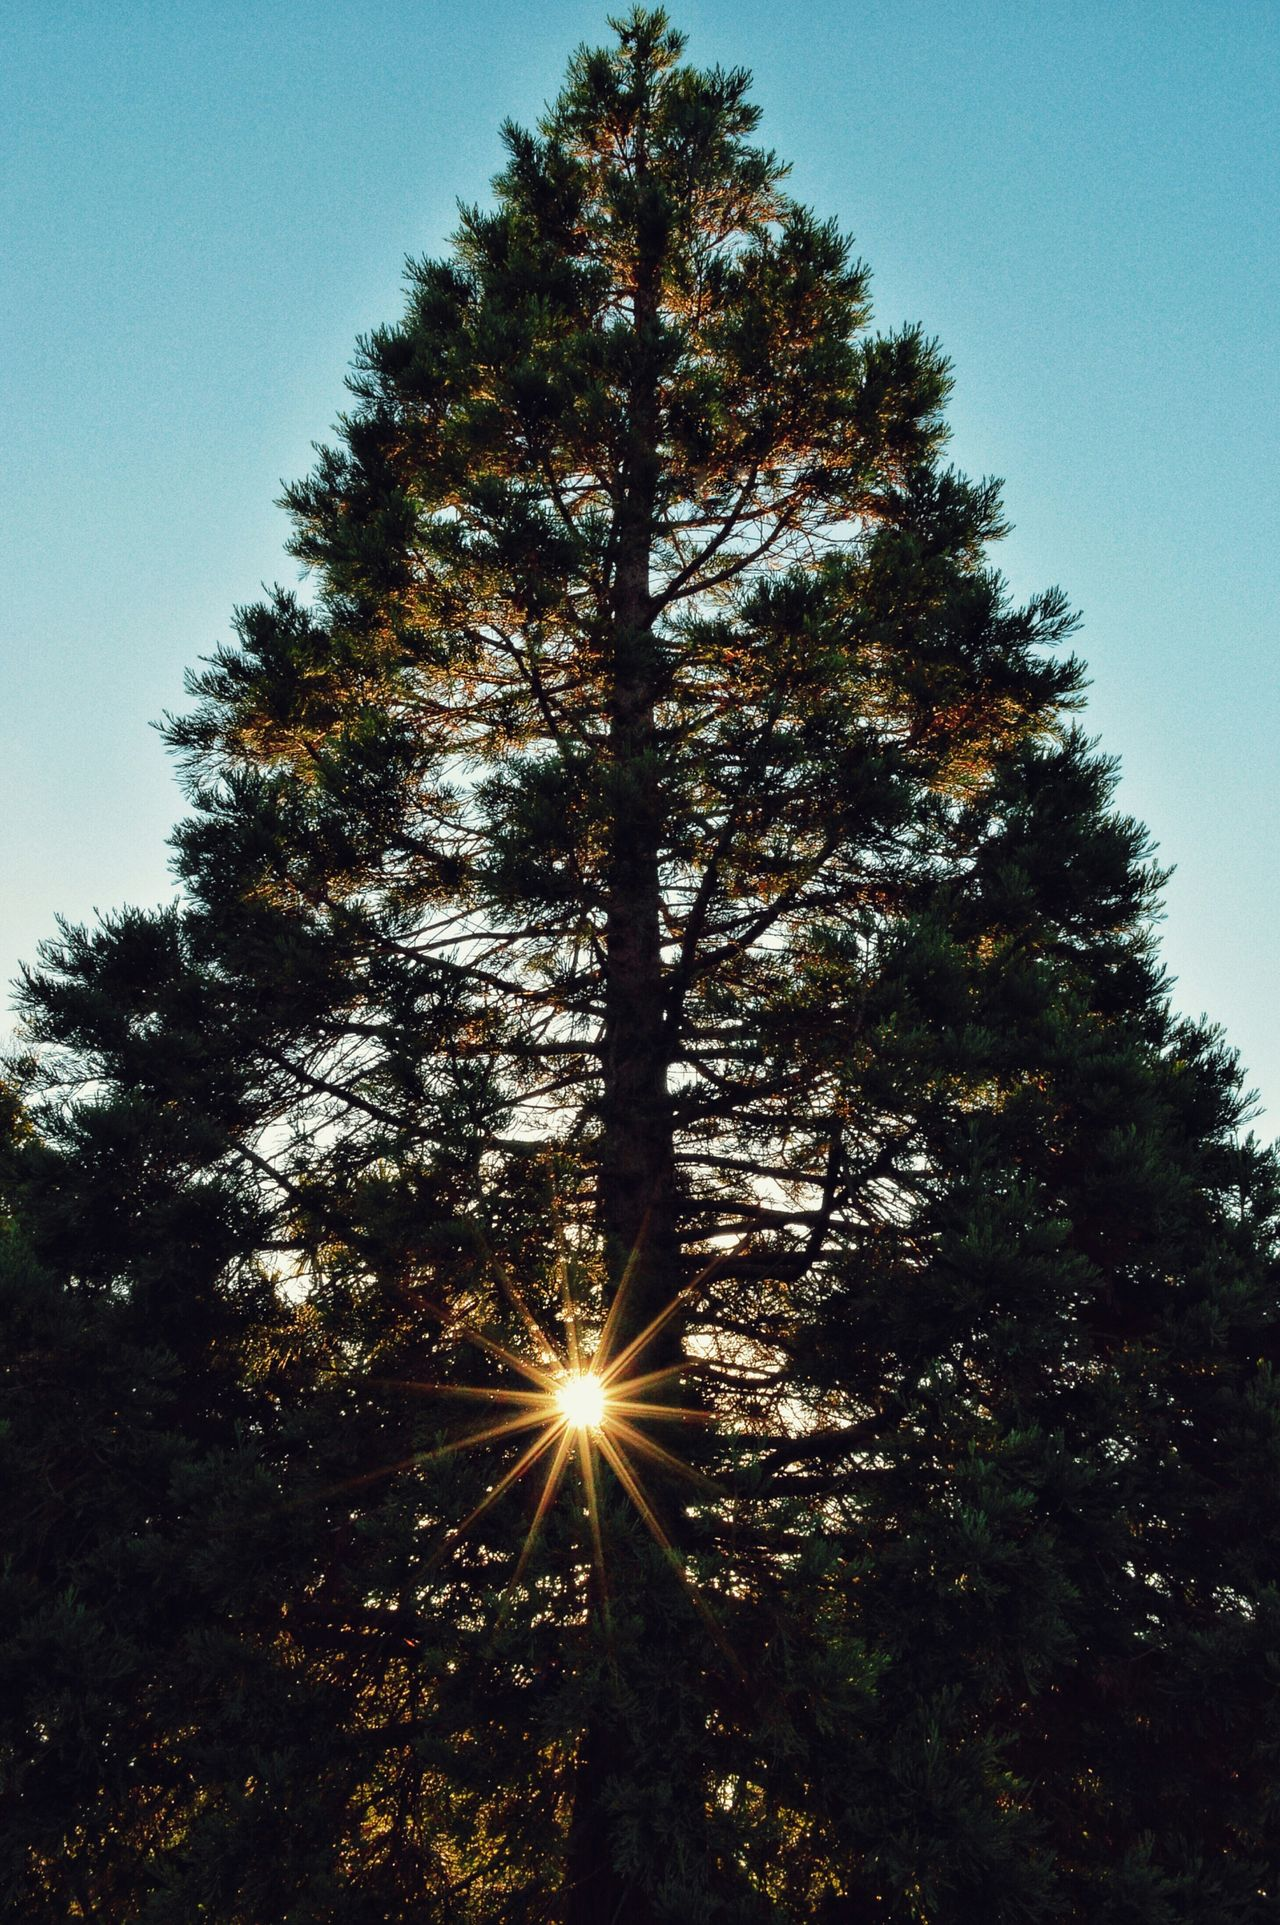 stand tall and shine 🙌🙋🙋🙌🐝 Tree Sunset Silhouettes Sun Shining Through The Trees Tall Trees Minimalism Kiwi Clicker Tadaa Community Conifer  Check This Out From My Point Of View Lookingup EyeEm Nature Lover Eye4photography  Showcase: February Getting Inspired Hello World Photography Today's Hot Look TreePorn Nature Good Morning EyeEm Best Shots Nature Photography EyeEm Best Edits Levin